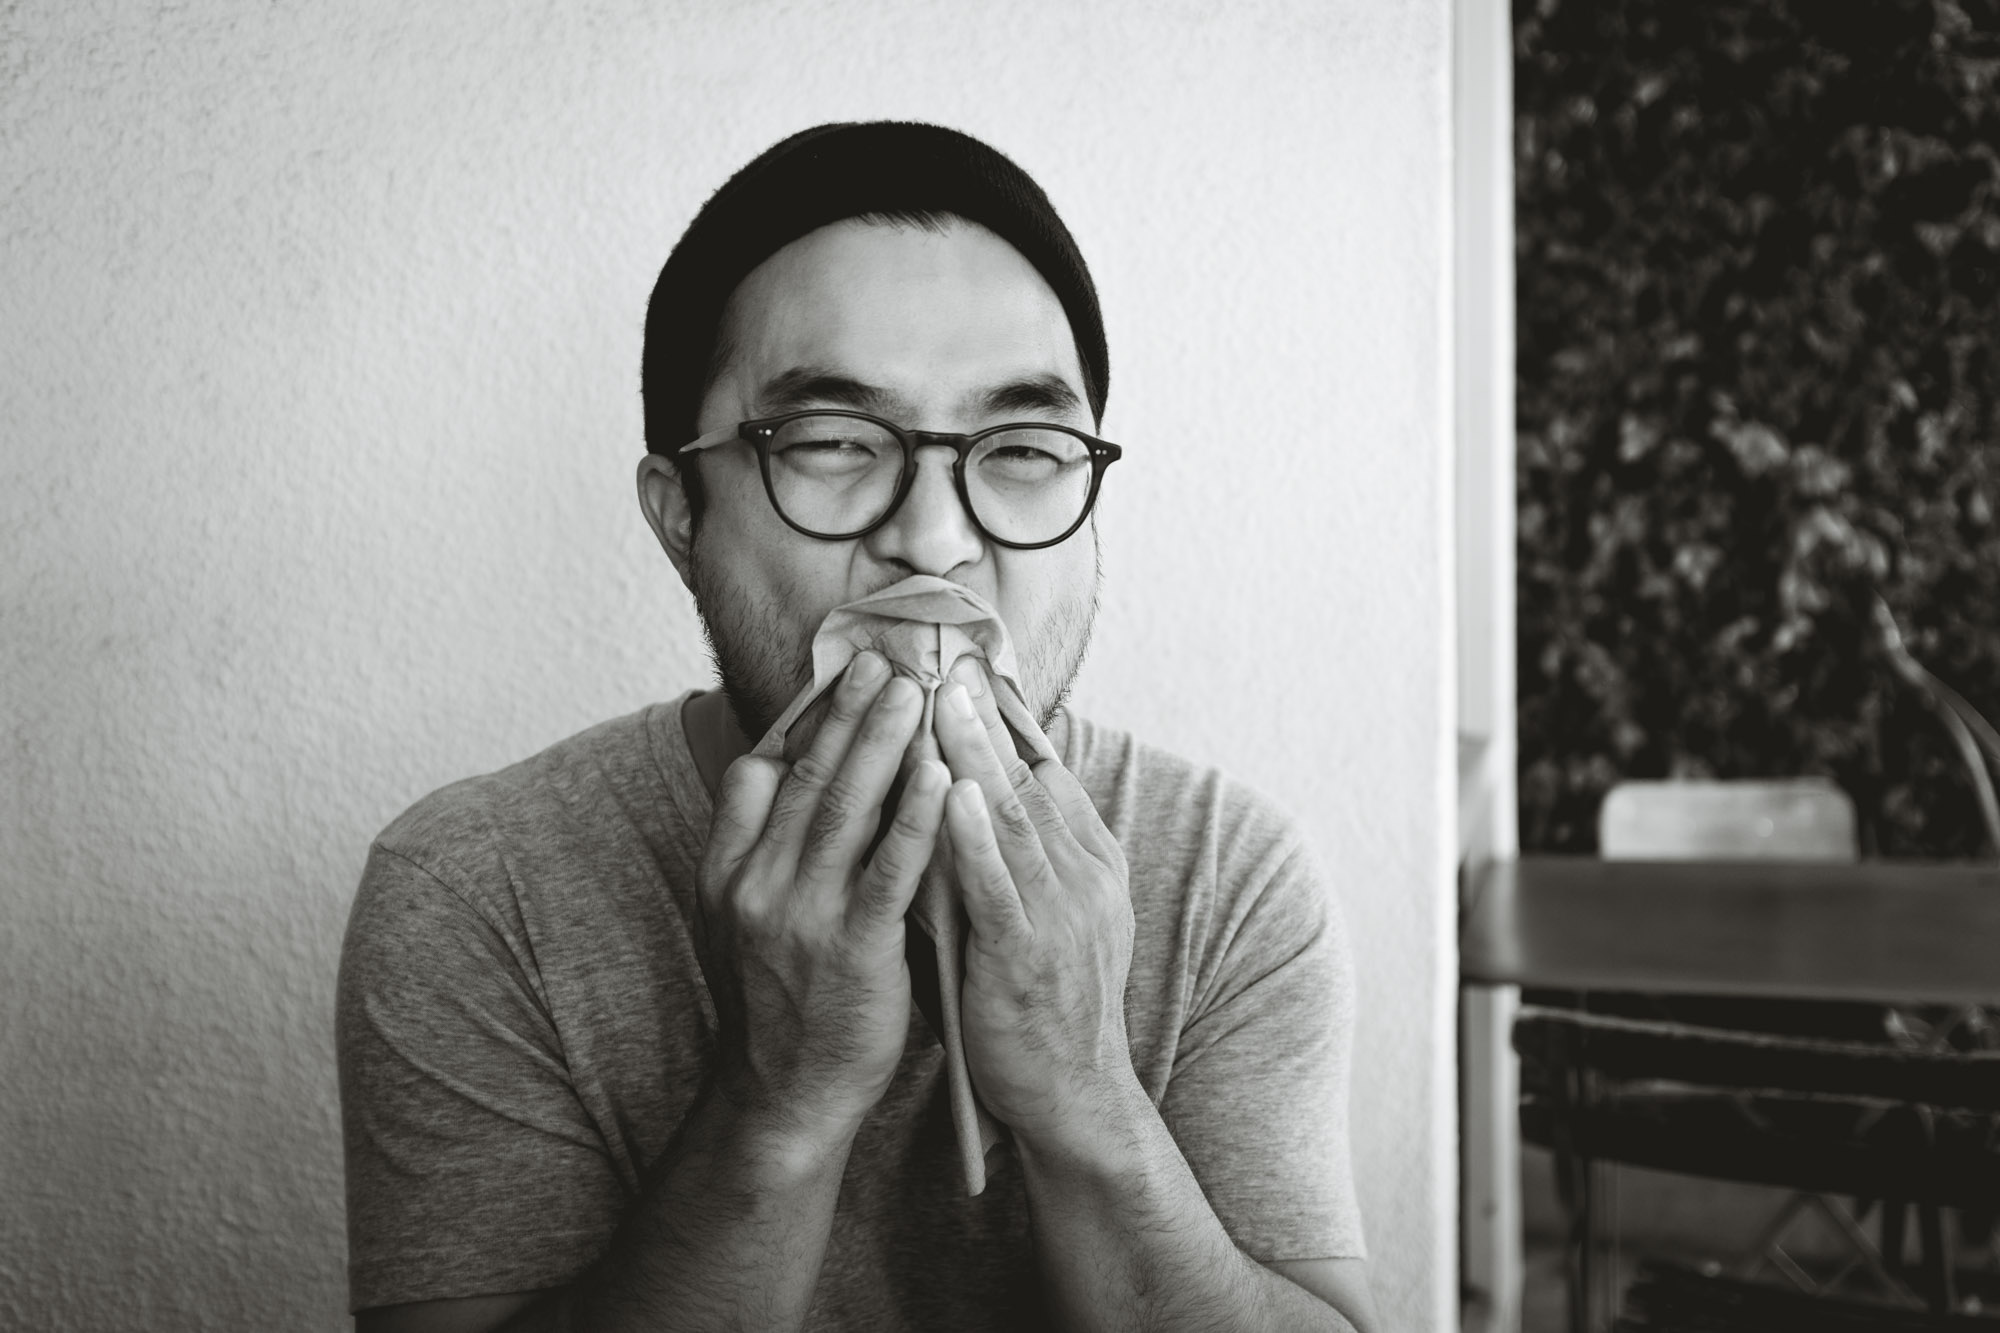 Charles wiping his face at Forage in Los Angeles